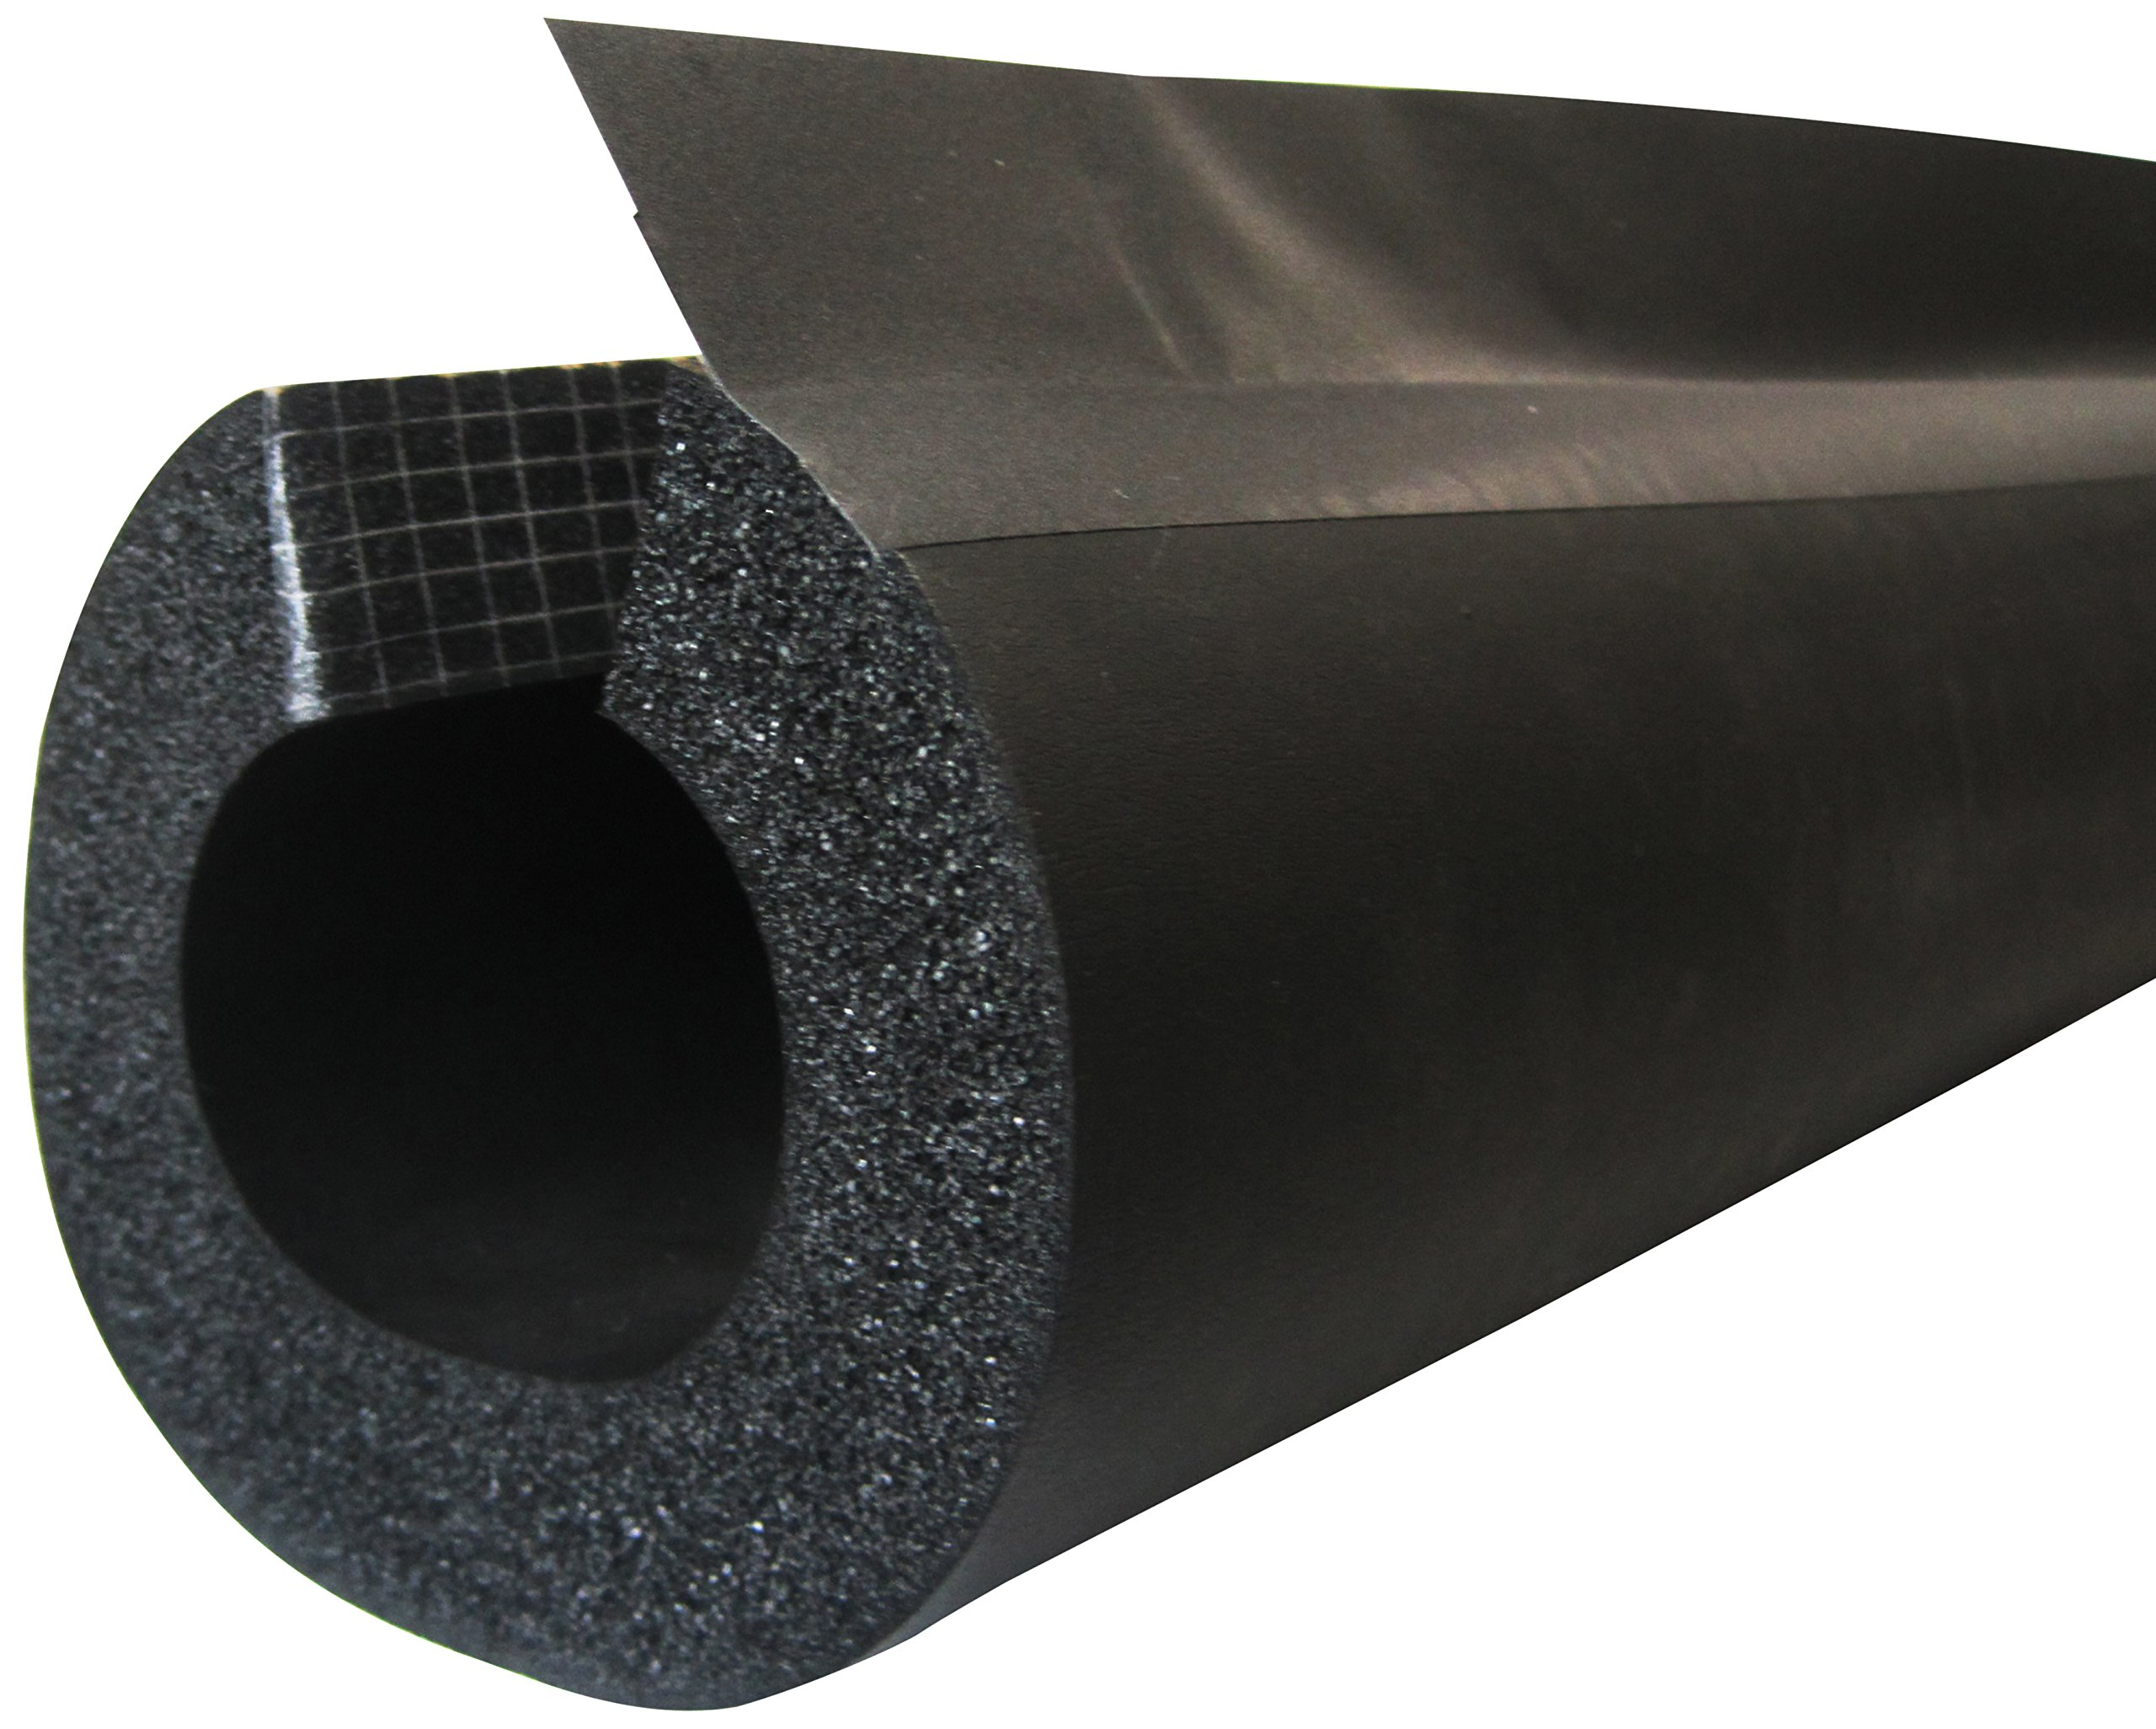 K-Flex 6RXLO100068 NBR/PVC Insul-Lock DS Tube with PVC Overlap Tape, 3/4'' Nominal Insulation ID, 6' Length, 1'' Wall Thickness, Black (Pack of 13)